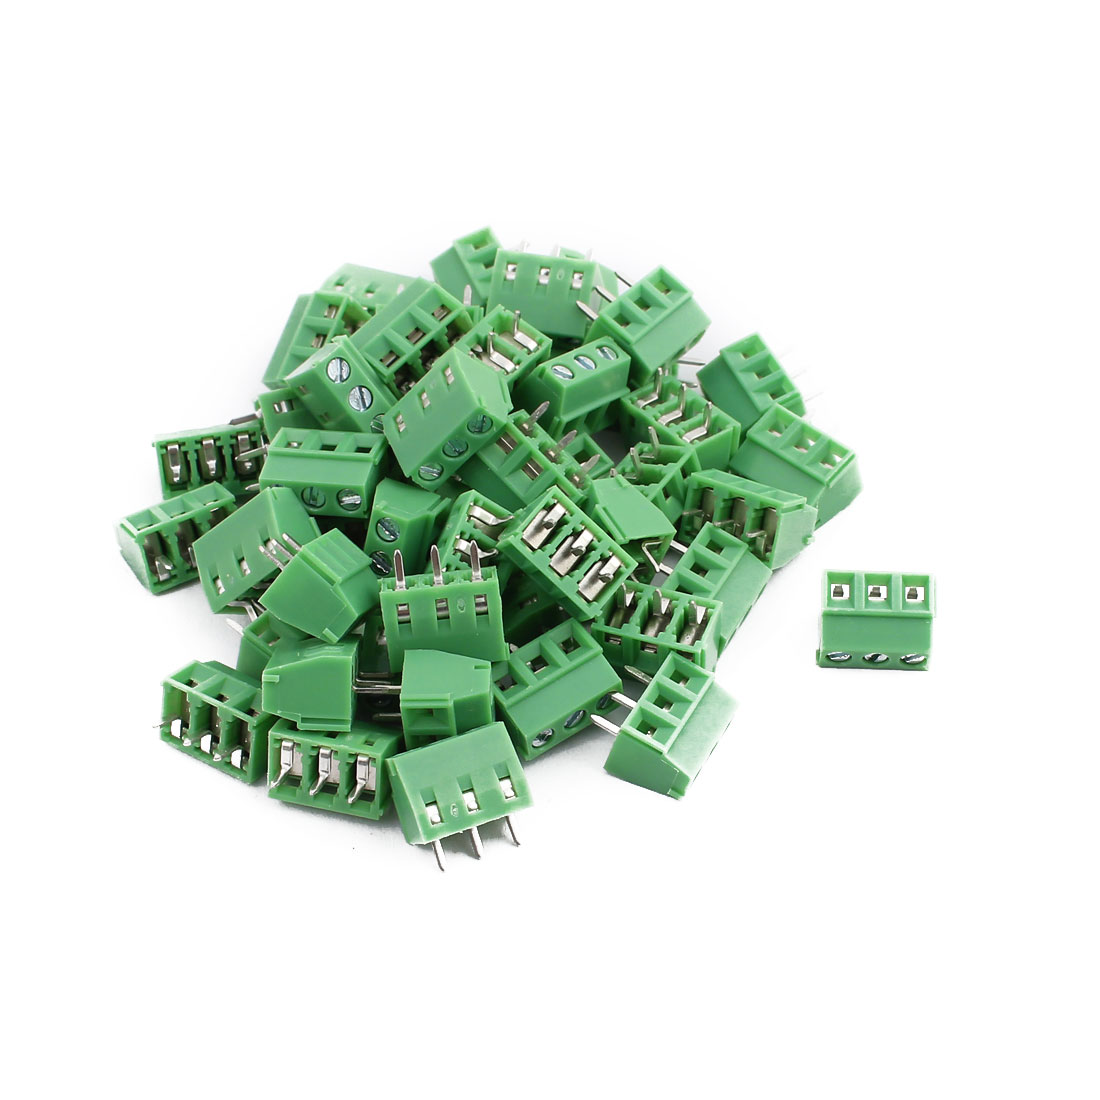 50Pcs KF128 AC300V 10A 3P 3.81mm Pitch Screw Type PCB Terminal Blocks Connector